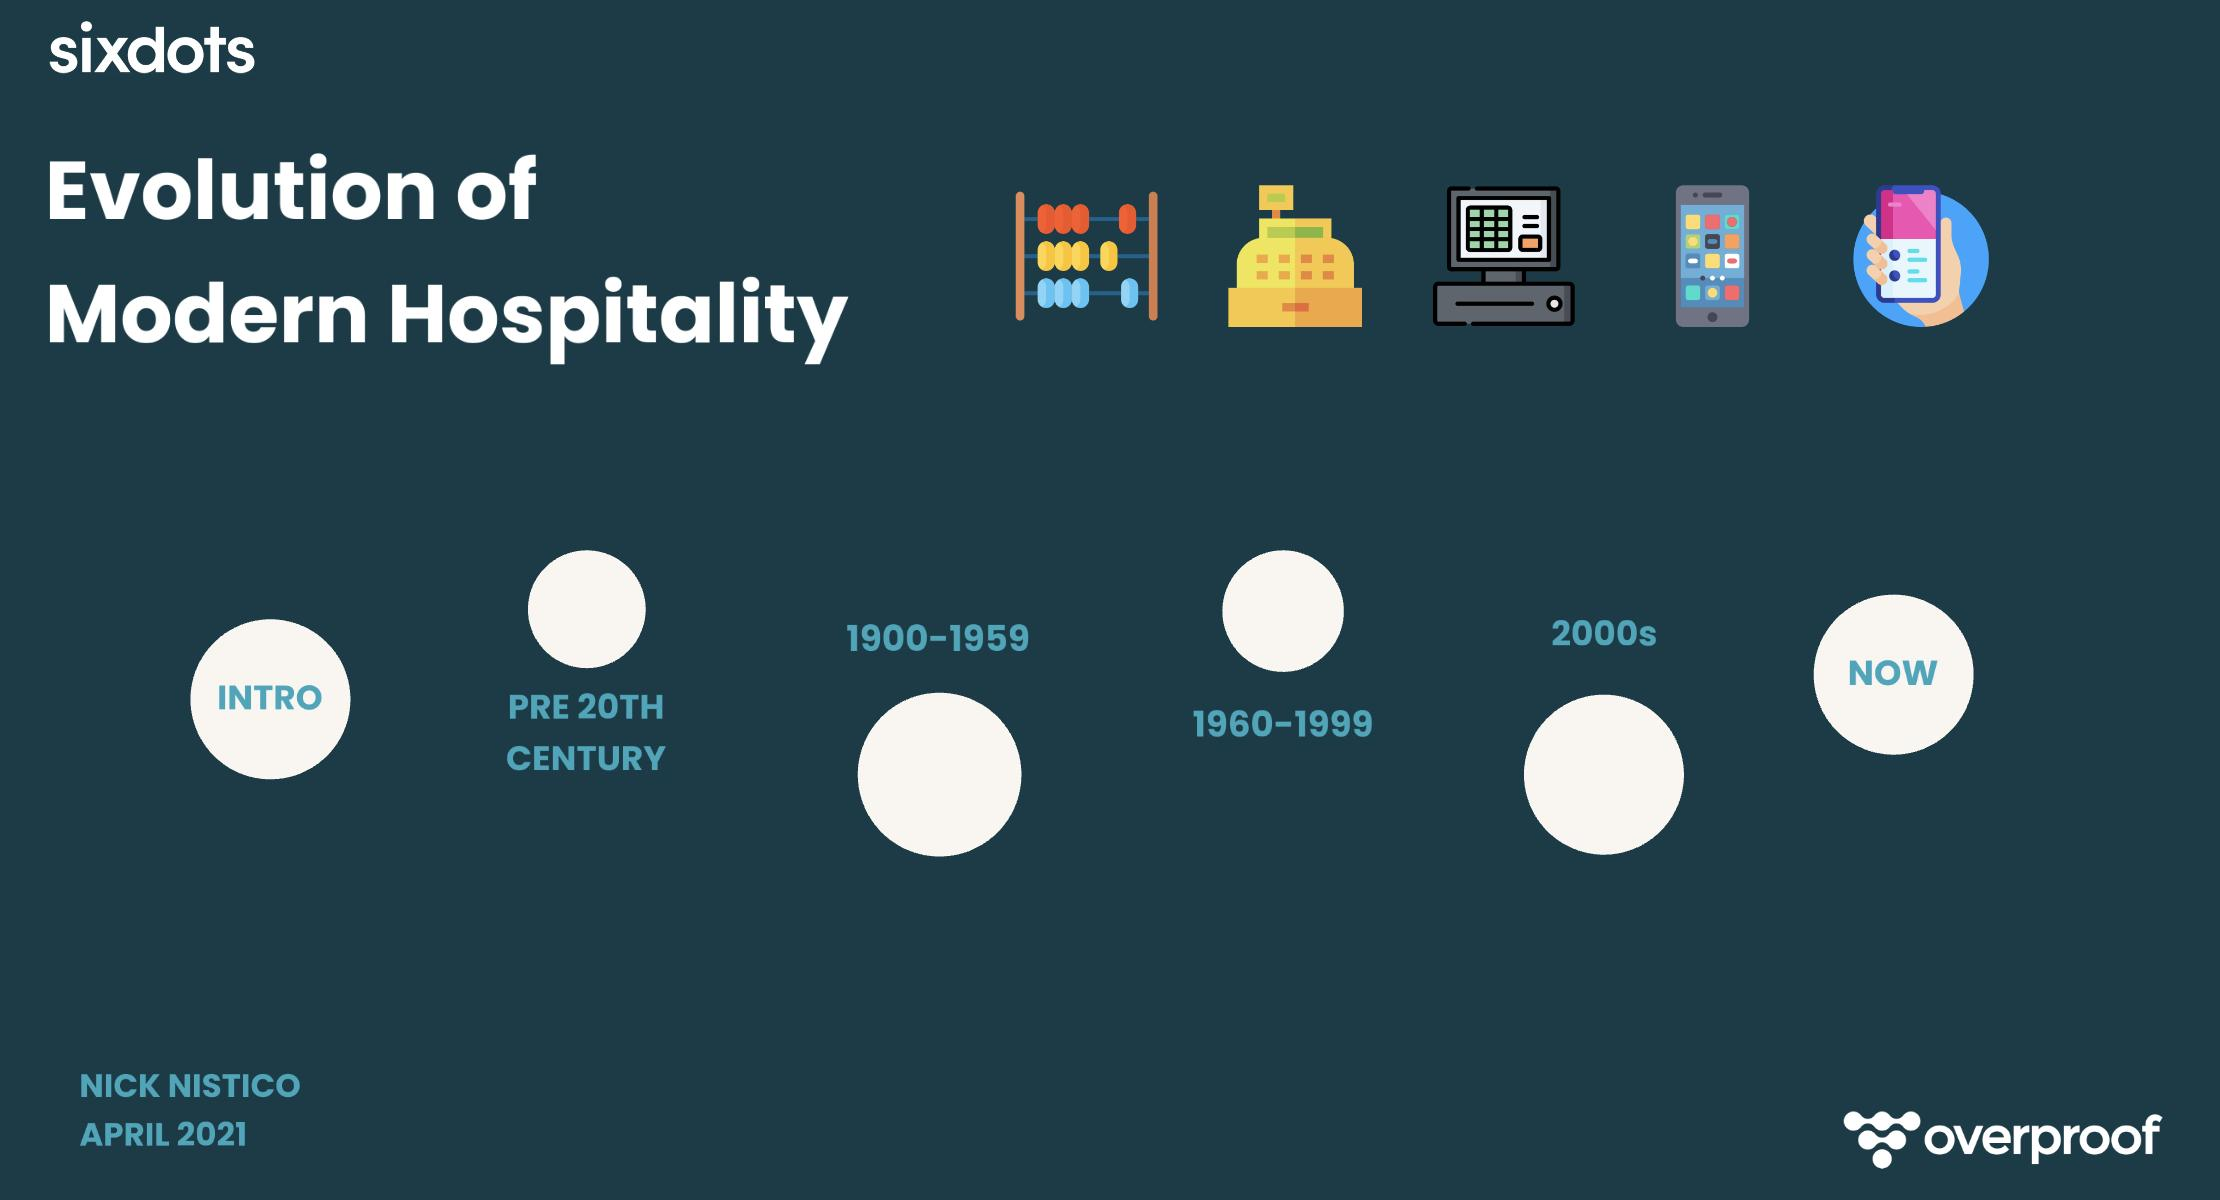 Page 2 of The Evolution of Modern Hospitality by Nick Nistico; Introduction by Don Billings